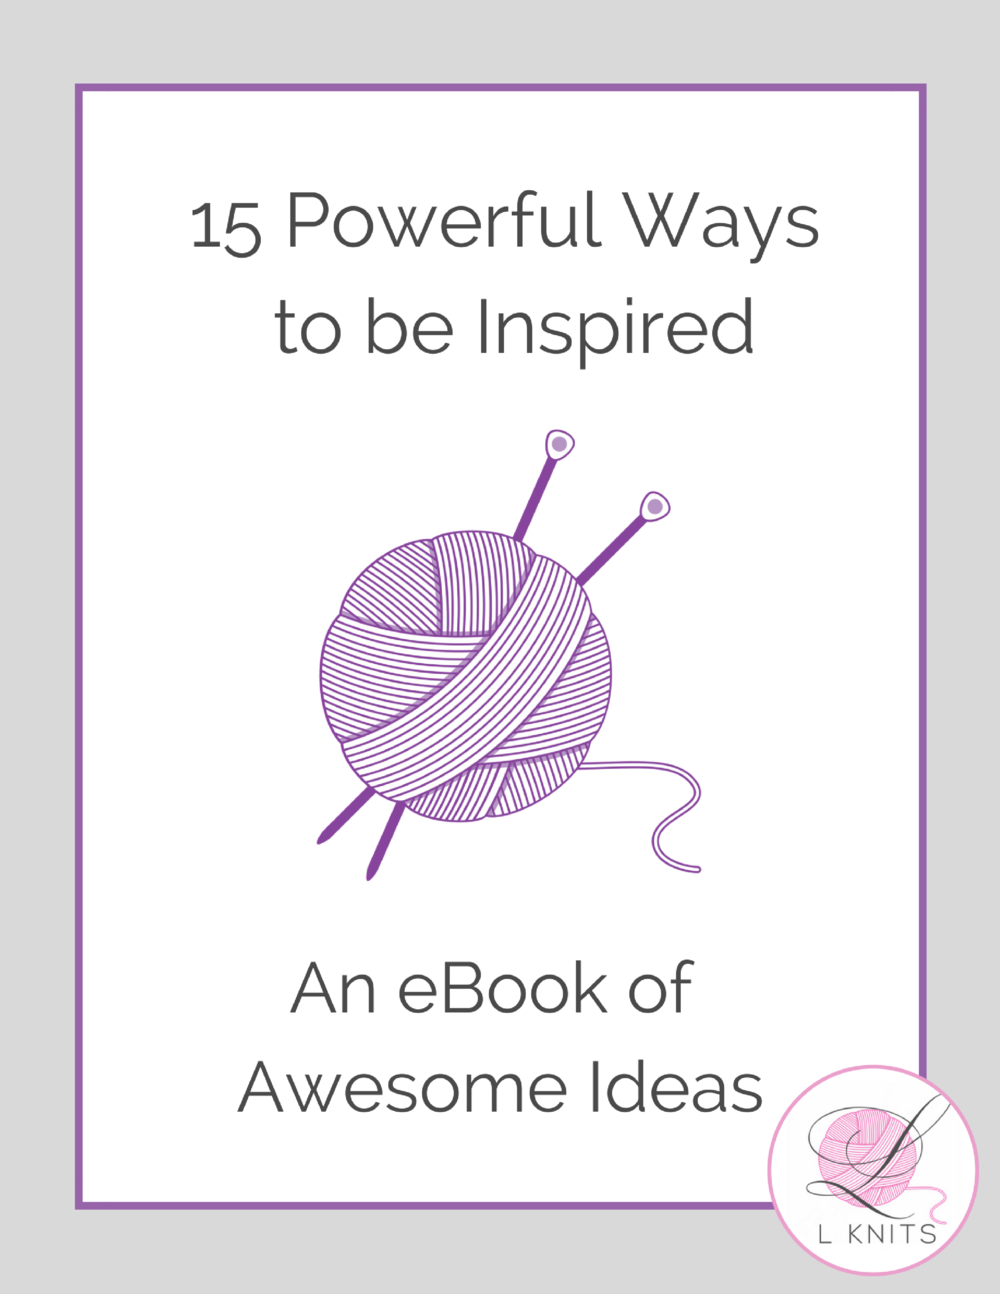 15 Powerful Ways to be Inspired